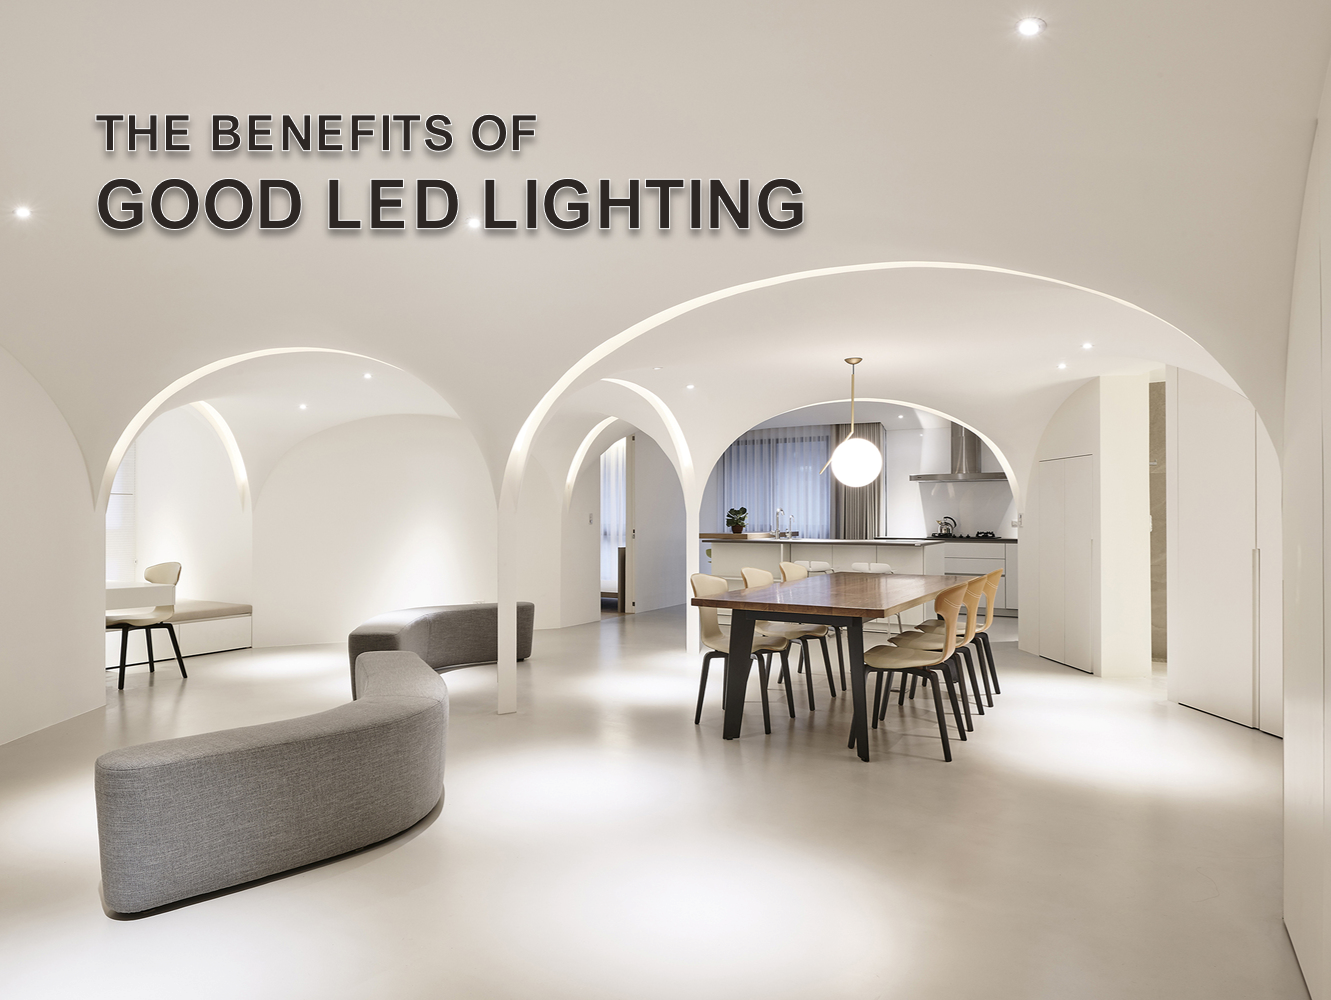 The Benefits Of Good LED Lighting